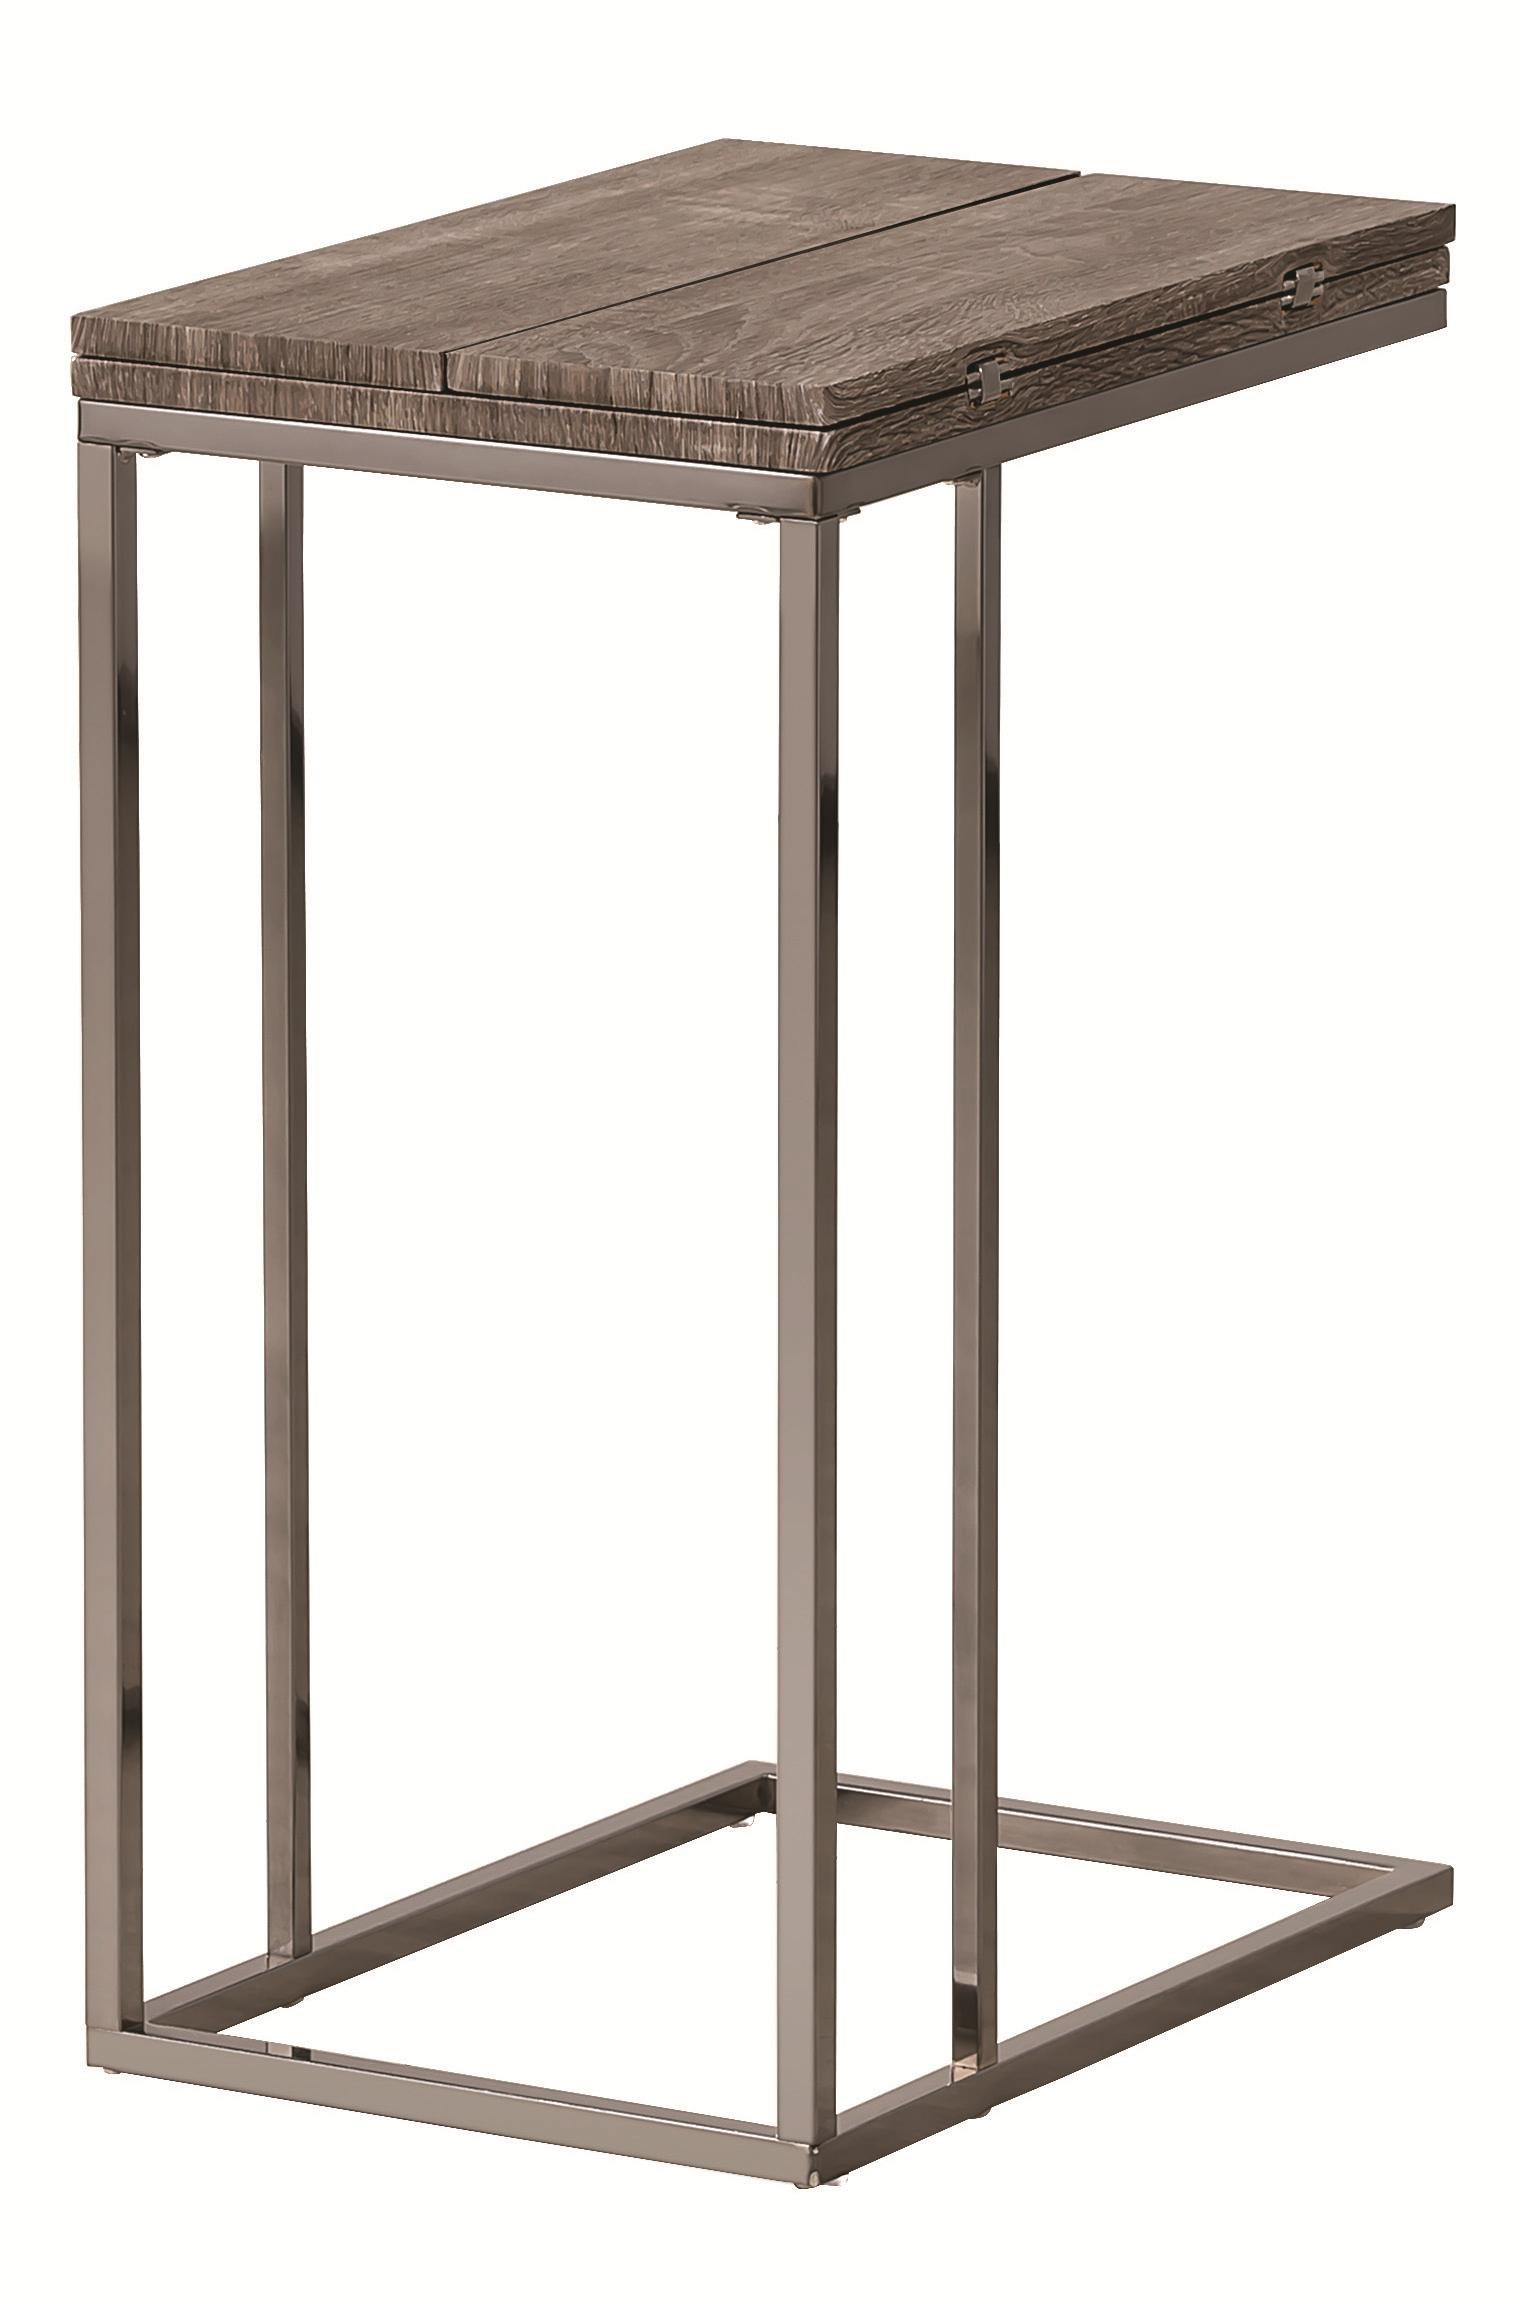 Coaster Accent Tables Weathered Snack Table   Dunk U0026 Bright Furniture   End  Tables